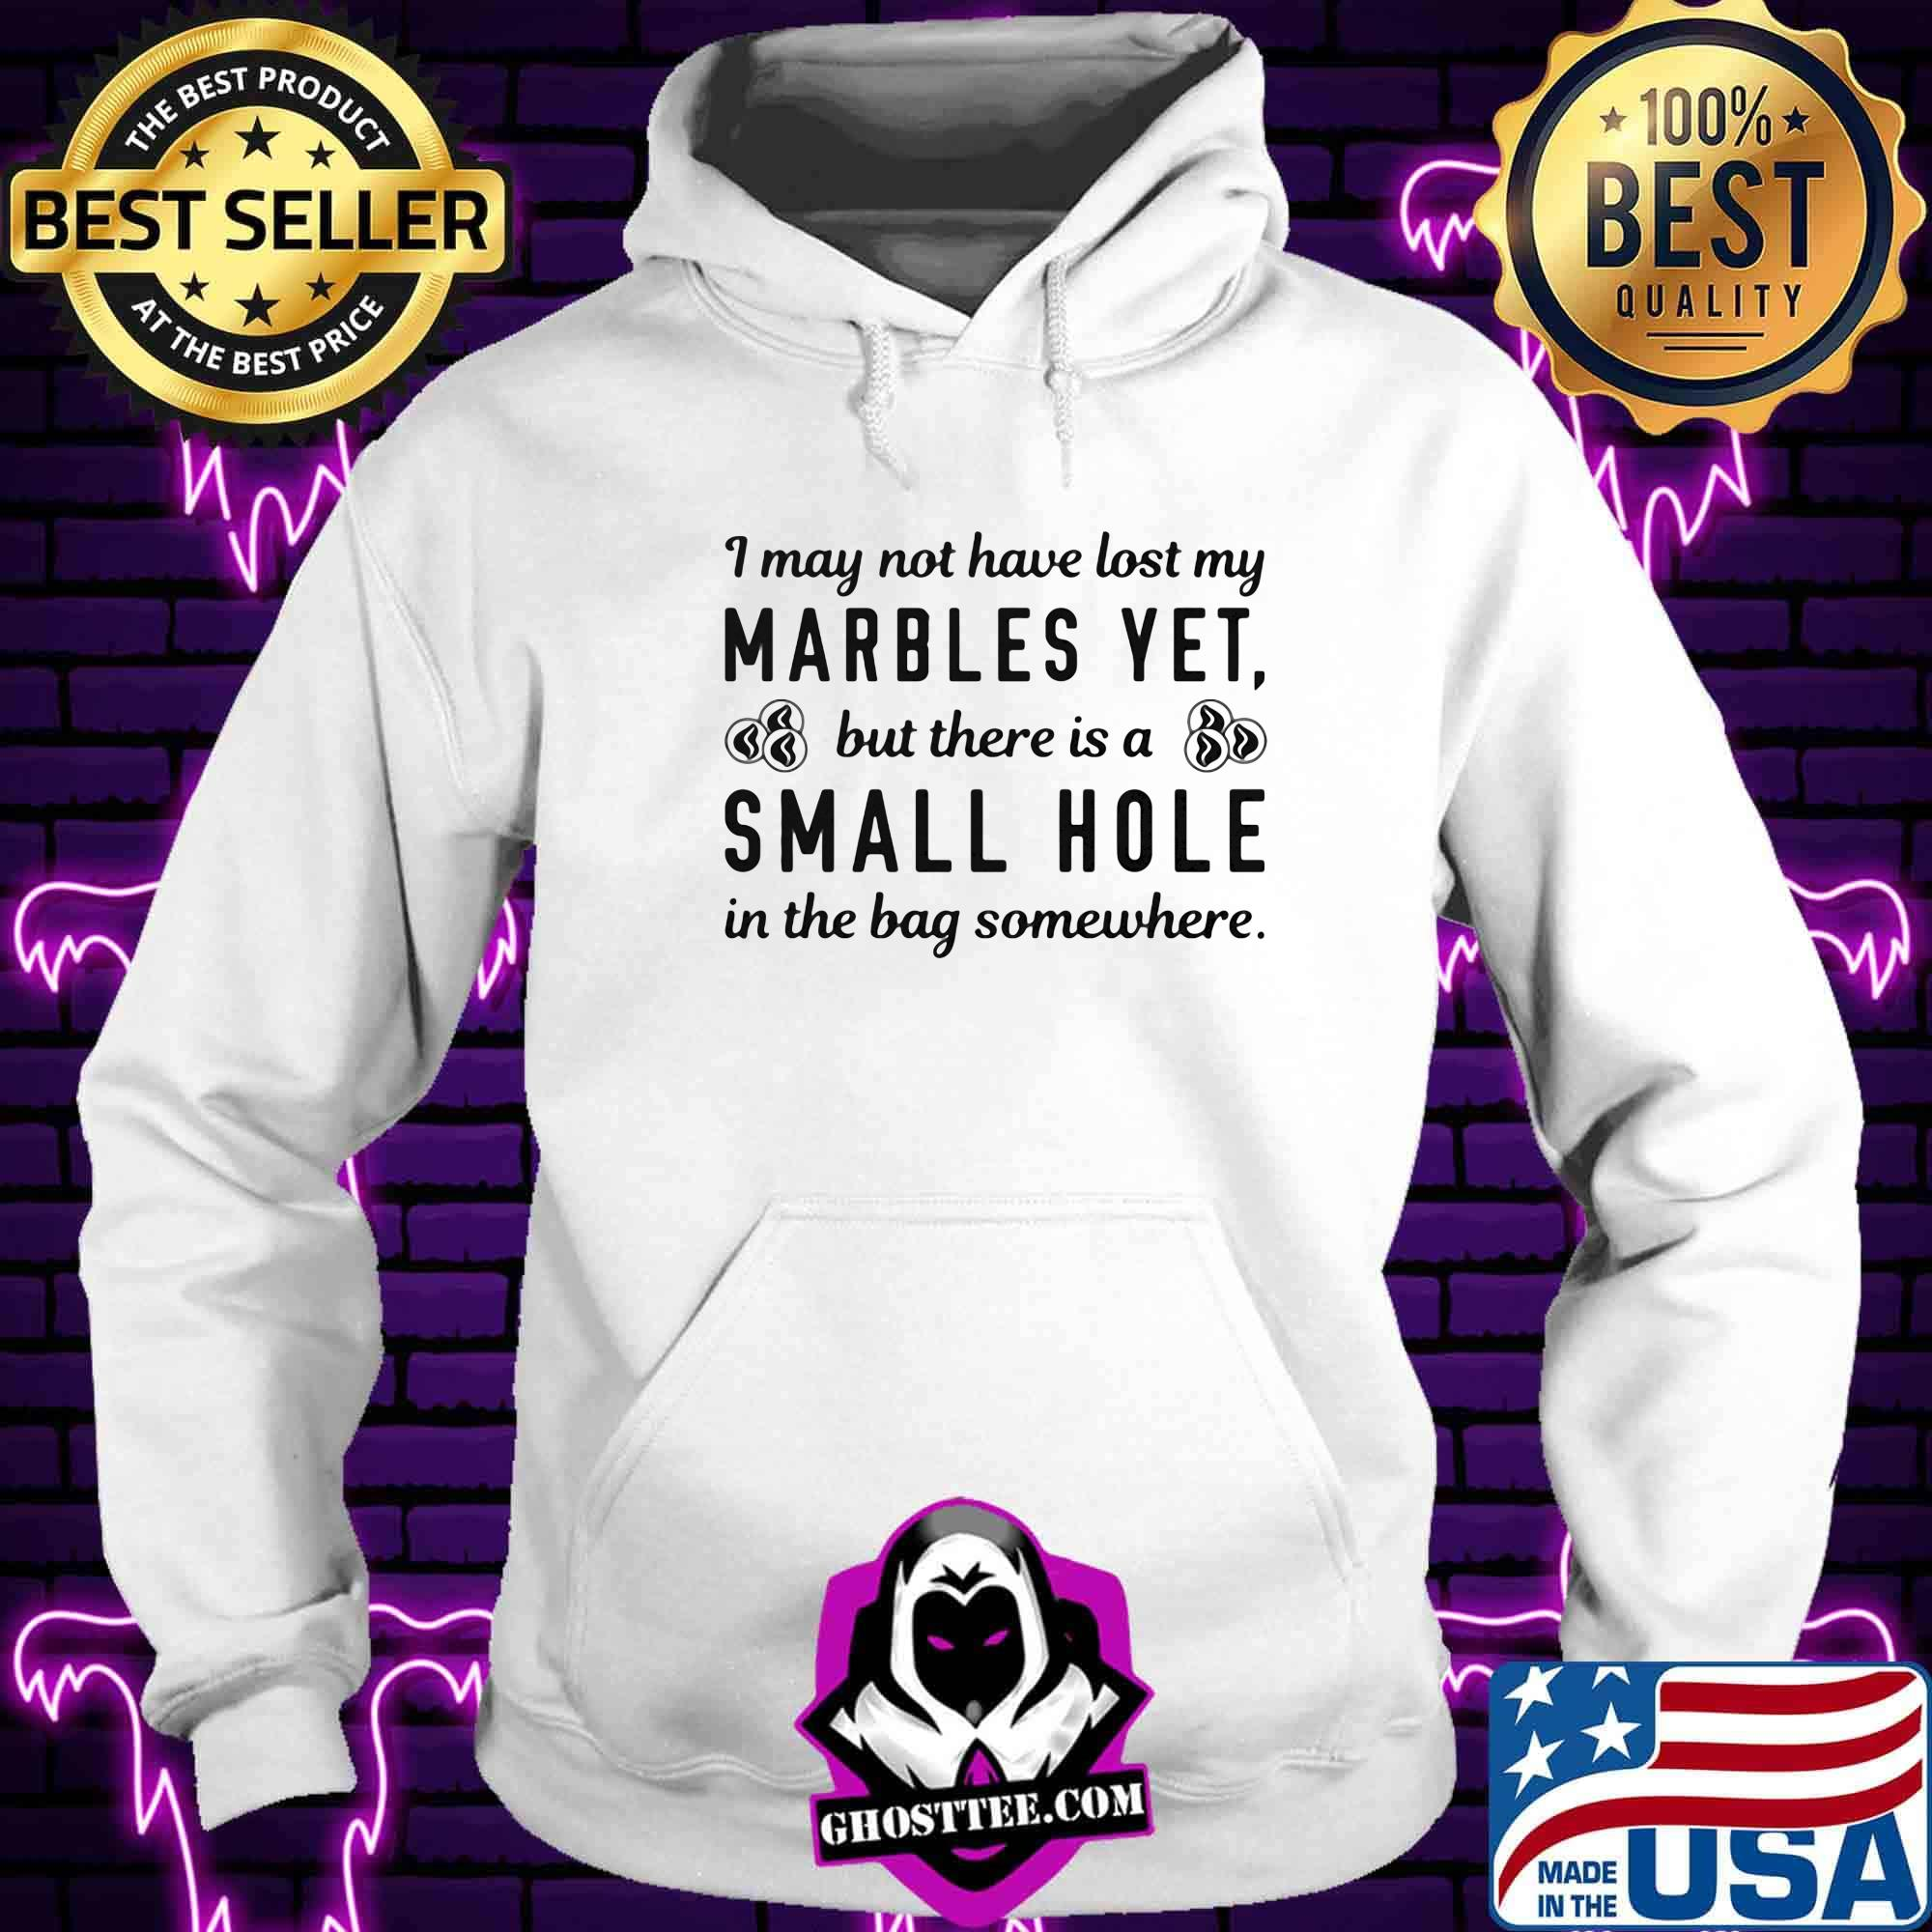 86c2efc4 i my not have lost my marbles yet but there is a small hole in the bag somewhere shirt hoodie - Home